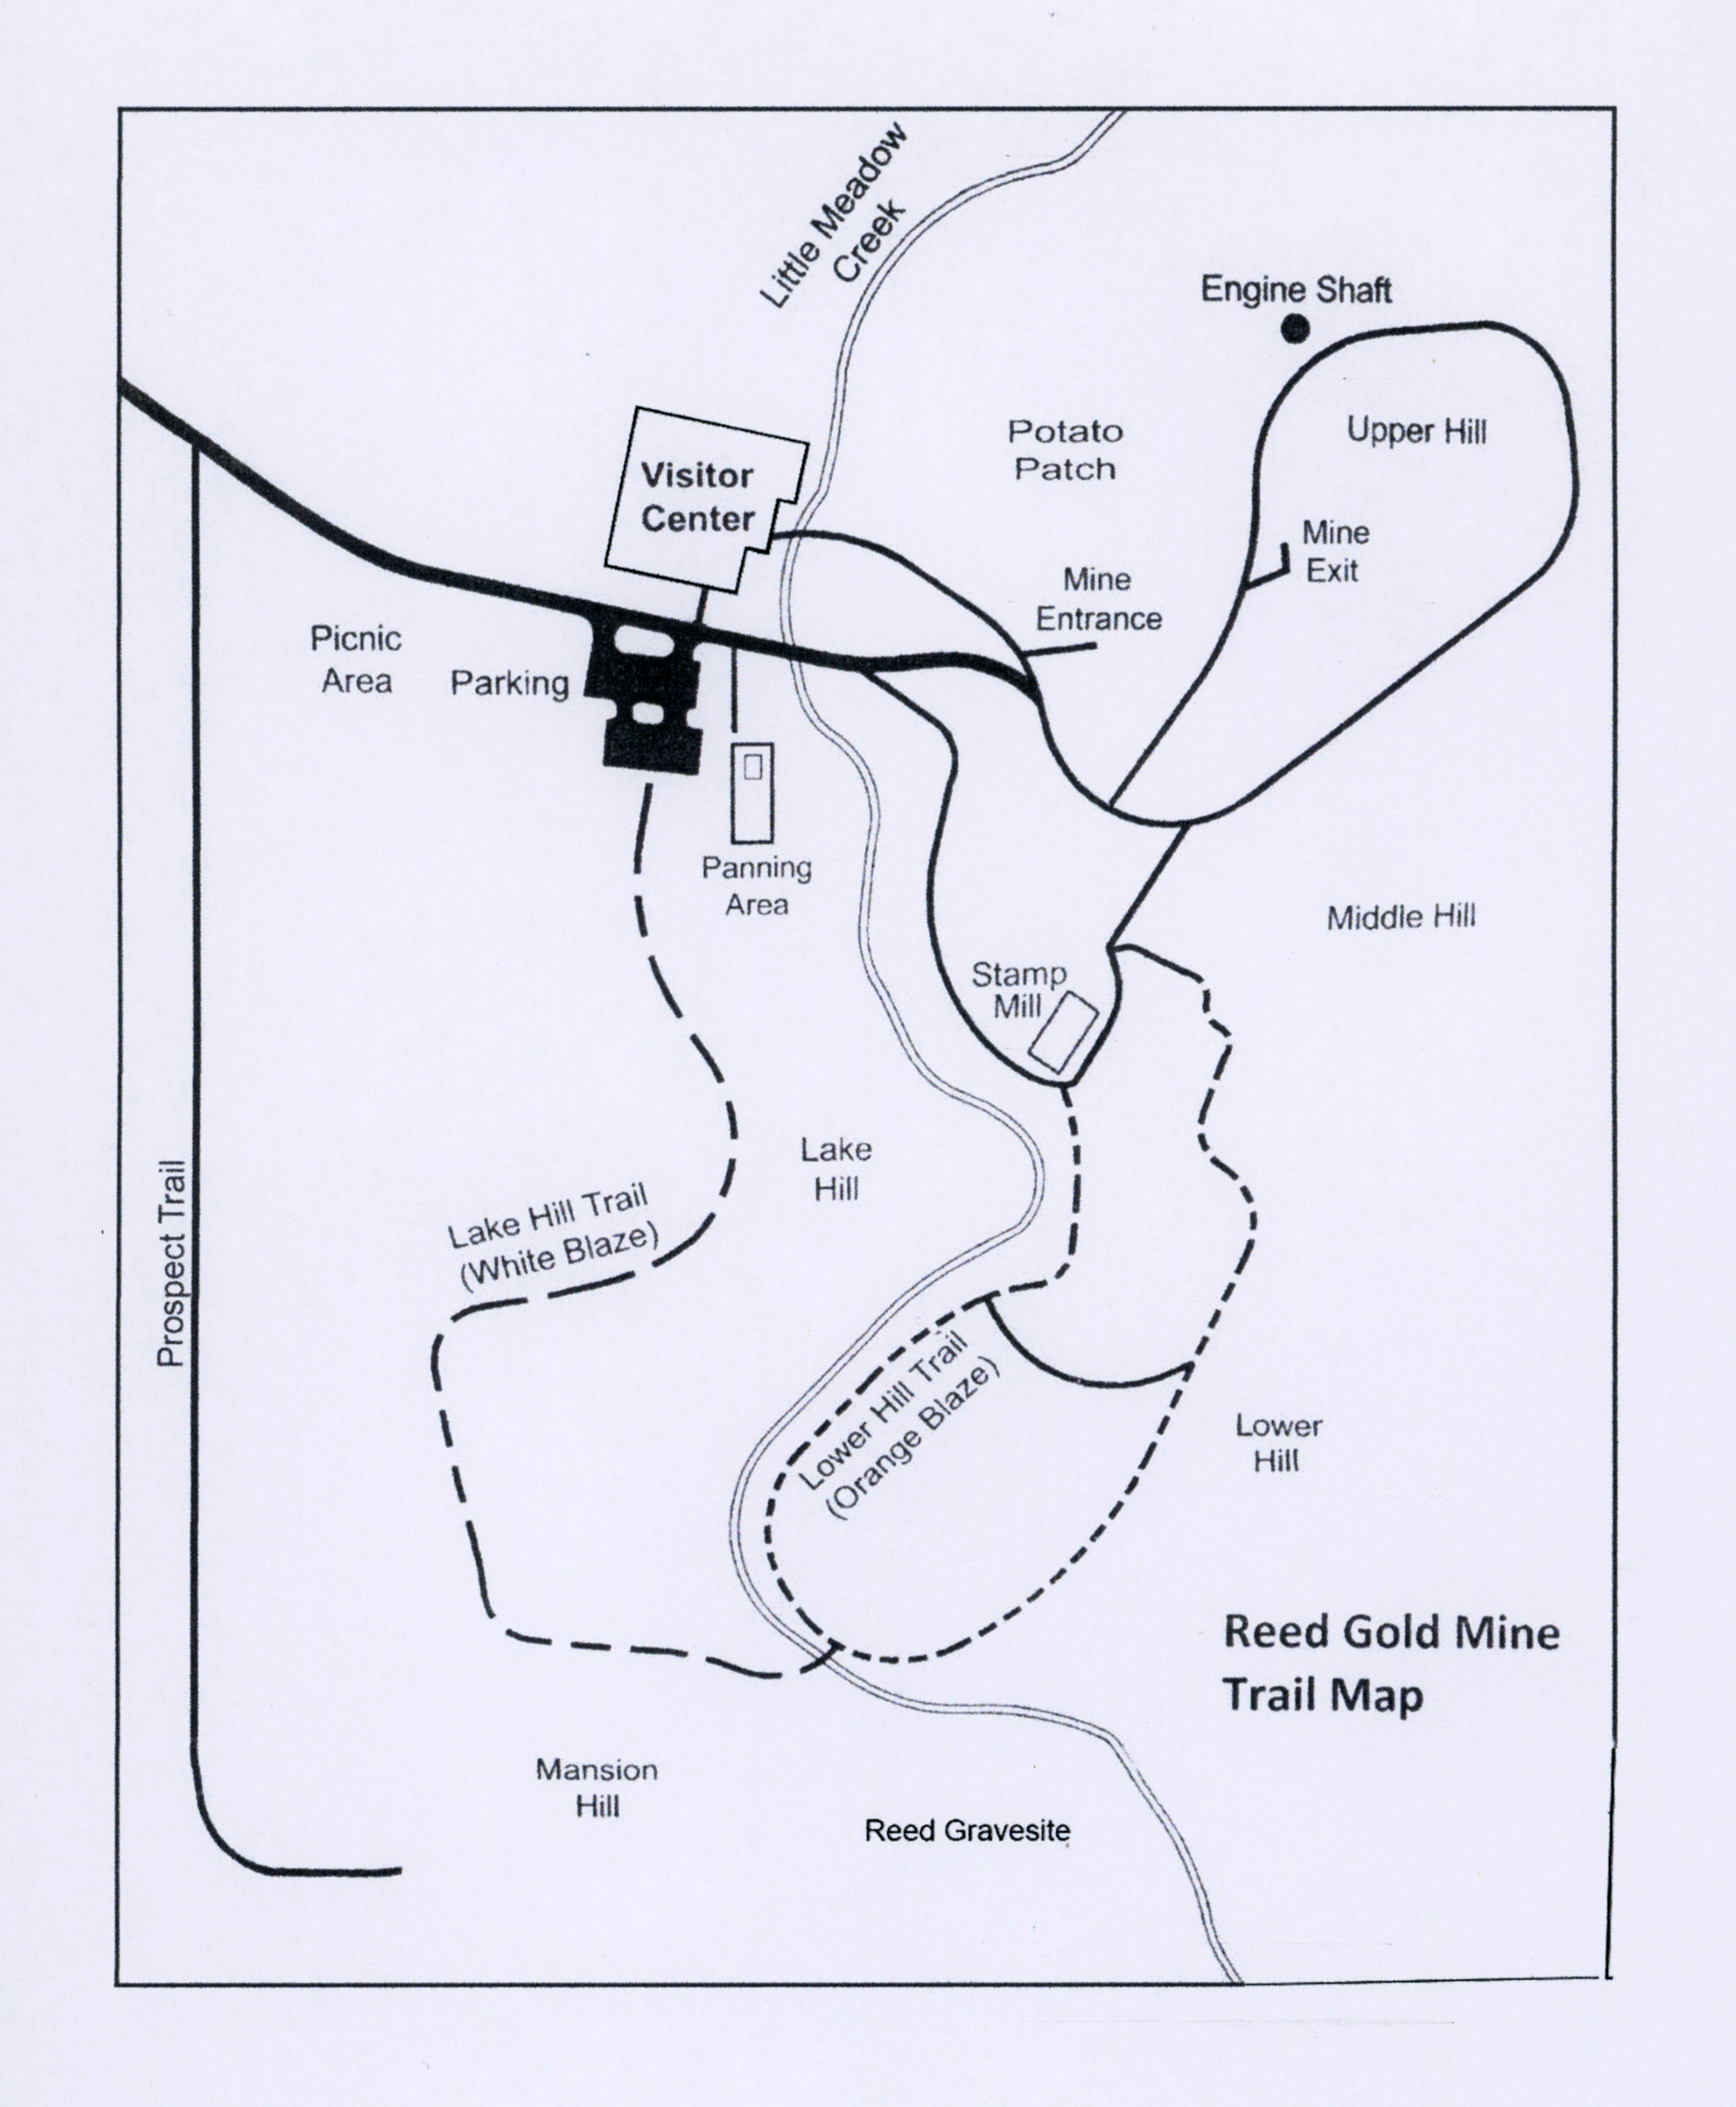 trail map of Reed Gold Mine